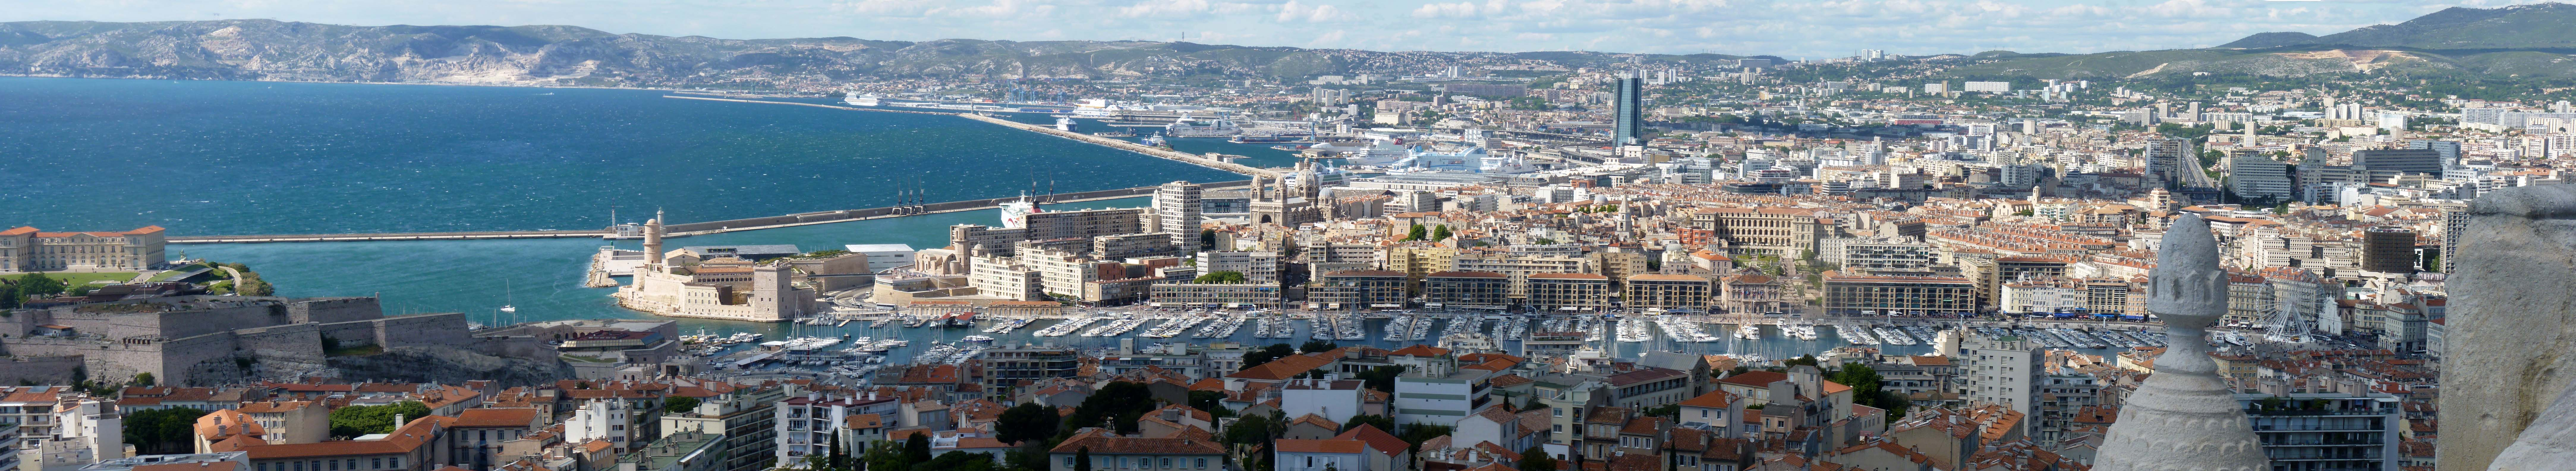 Preview for Agence de paysage marseille